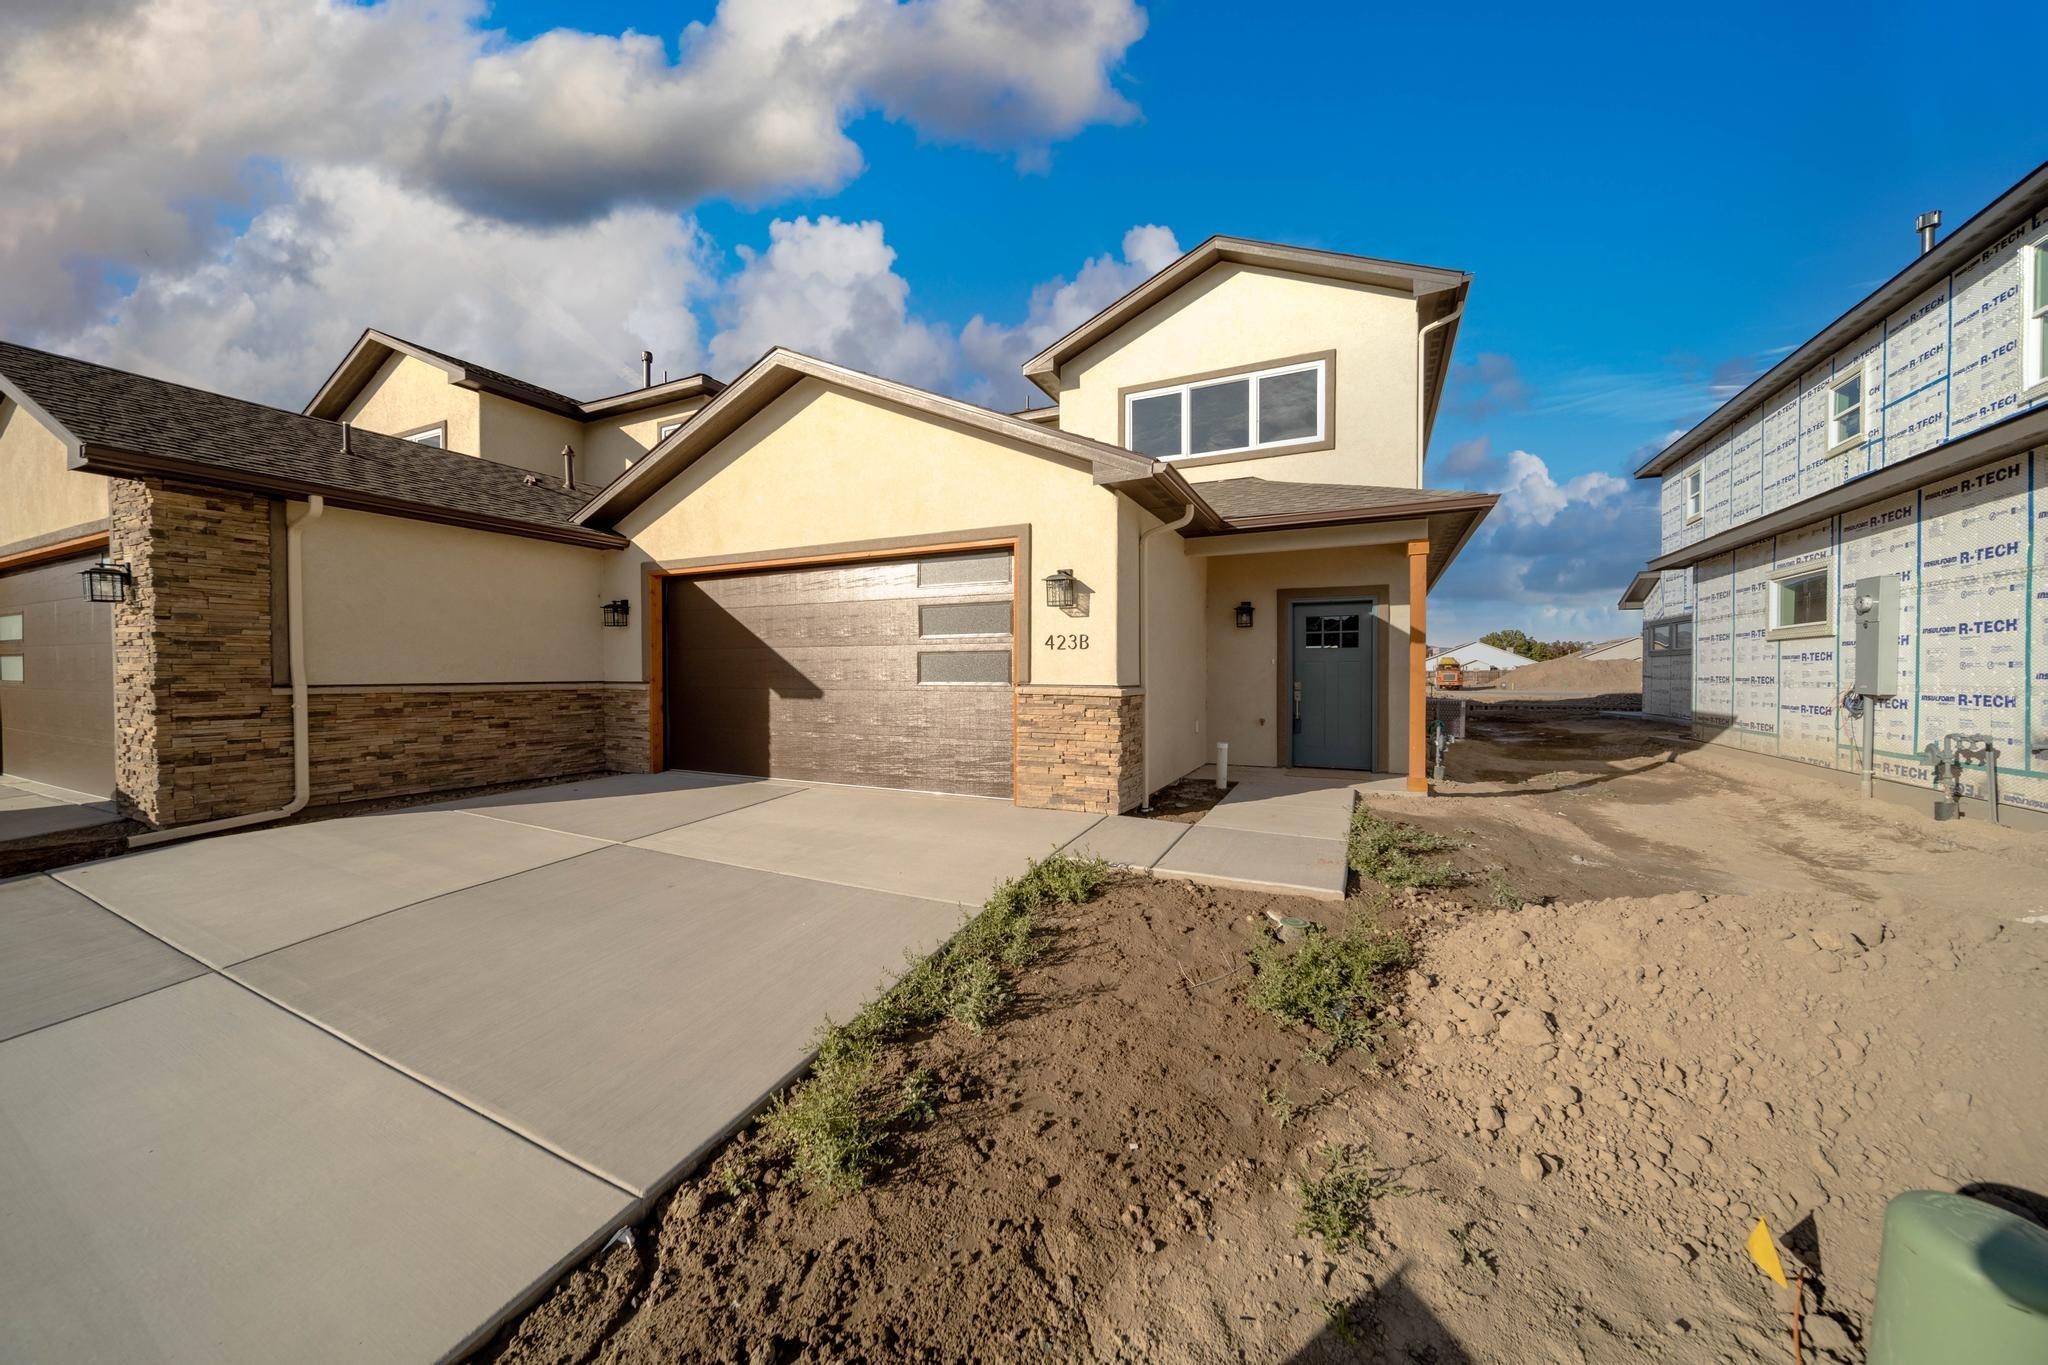 New construction -attached single family home in West Branch subdivision. Estimated date of completion August 20th, 2021. Features include -ground floor master bedroom suite, walk in pantry, custom modern barn door closets, large curbless shower, soaker tub, gorgeous Mesa view from office, wired for electric car outlet in garage.